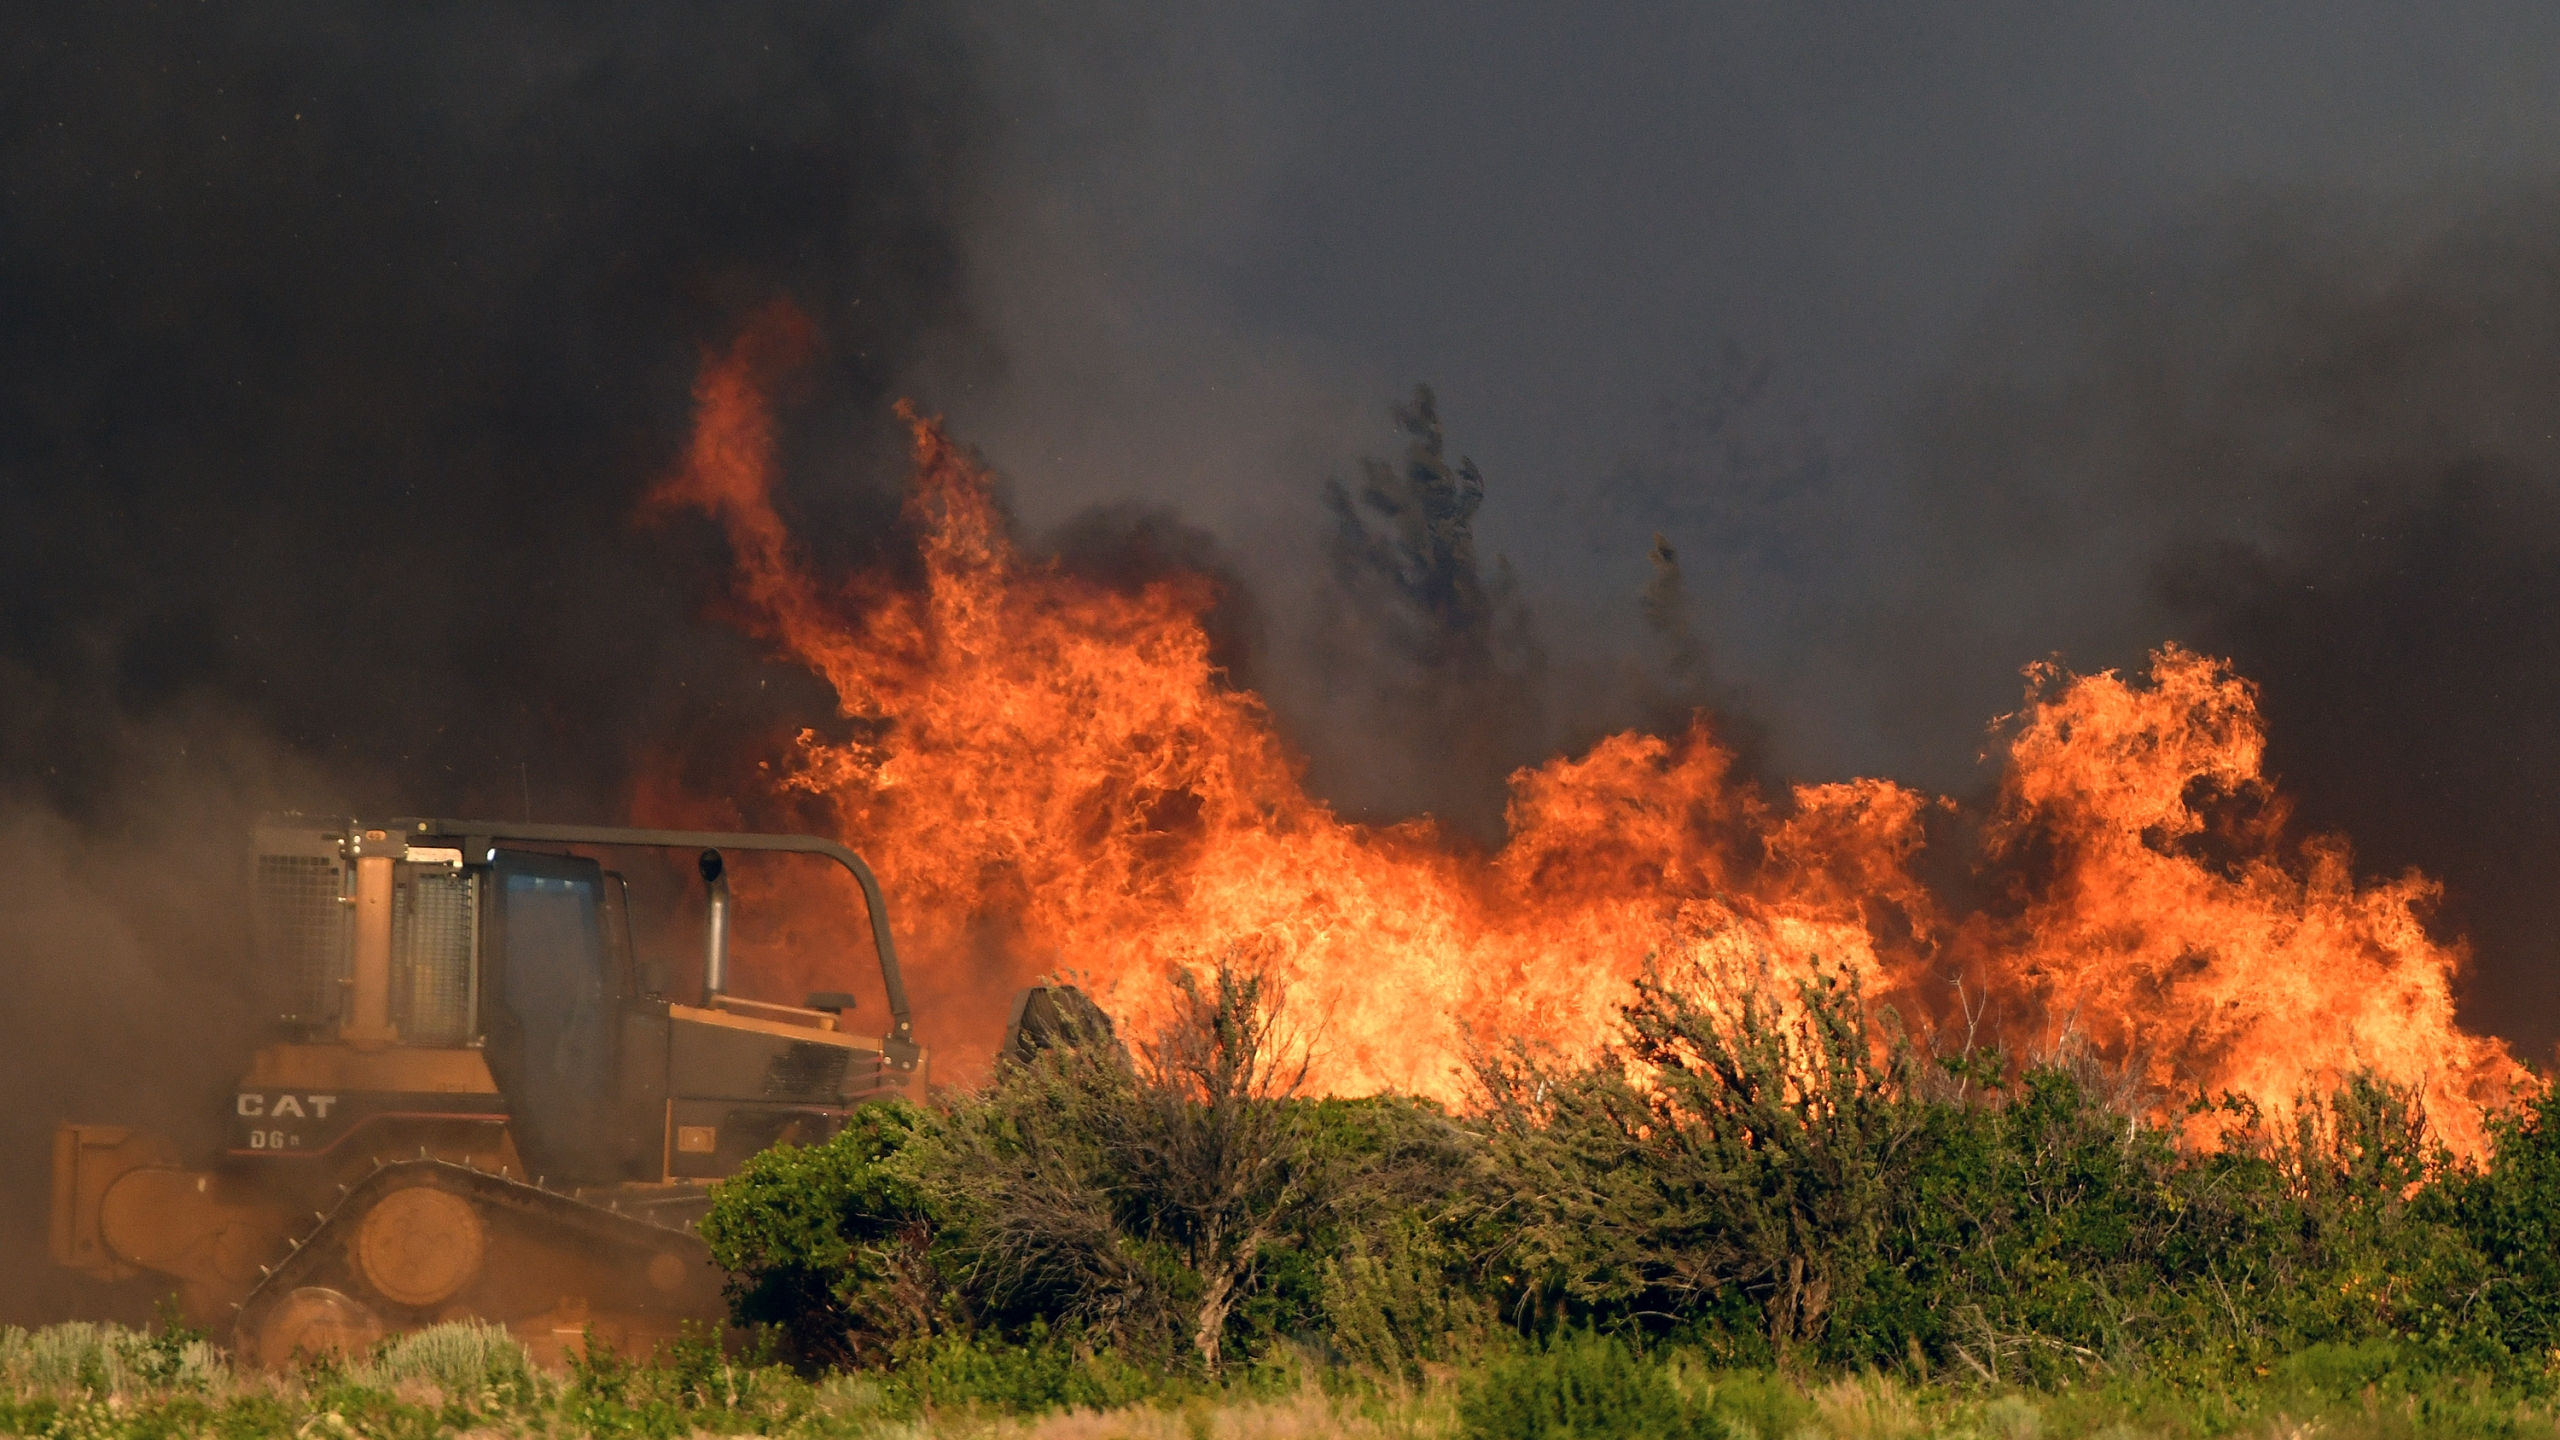 A bulldozer operator works on a fire line as vegetation burns nearby at the Lava Fire on Monday, June 28, 2021, north of Weed, Calif. Officers shot and killed a man who pulled a gun as they tried to keep him out of a complex of marijuana farms in an area of far Northern California where thousands of people have been ordered to evacuate because of a raging wildfire. (Scott Stoddard/Grants Pass Daily Courier via AP)